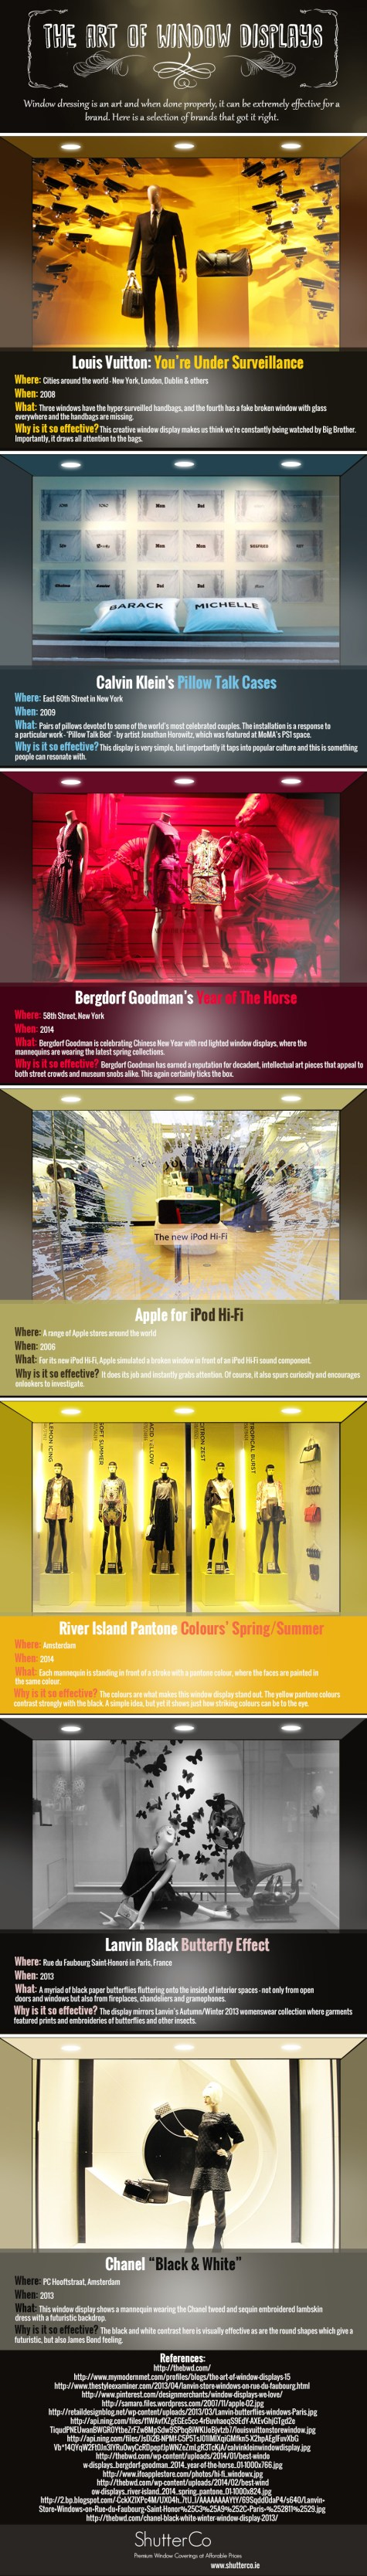 The_Art_of_Window_Displays-Infographic